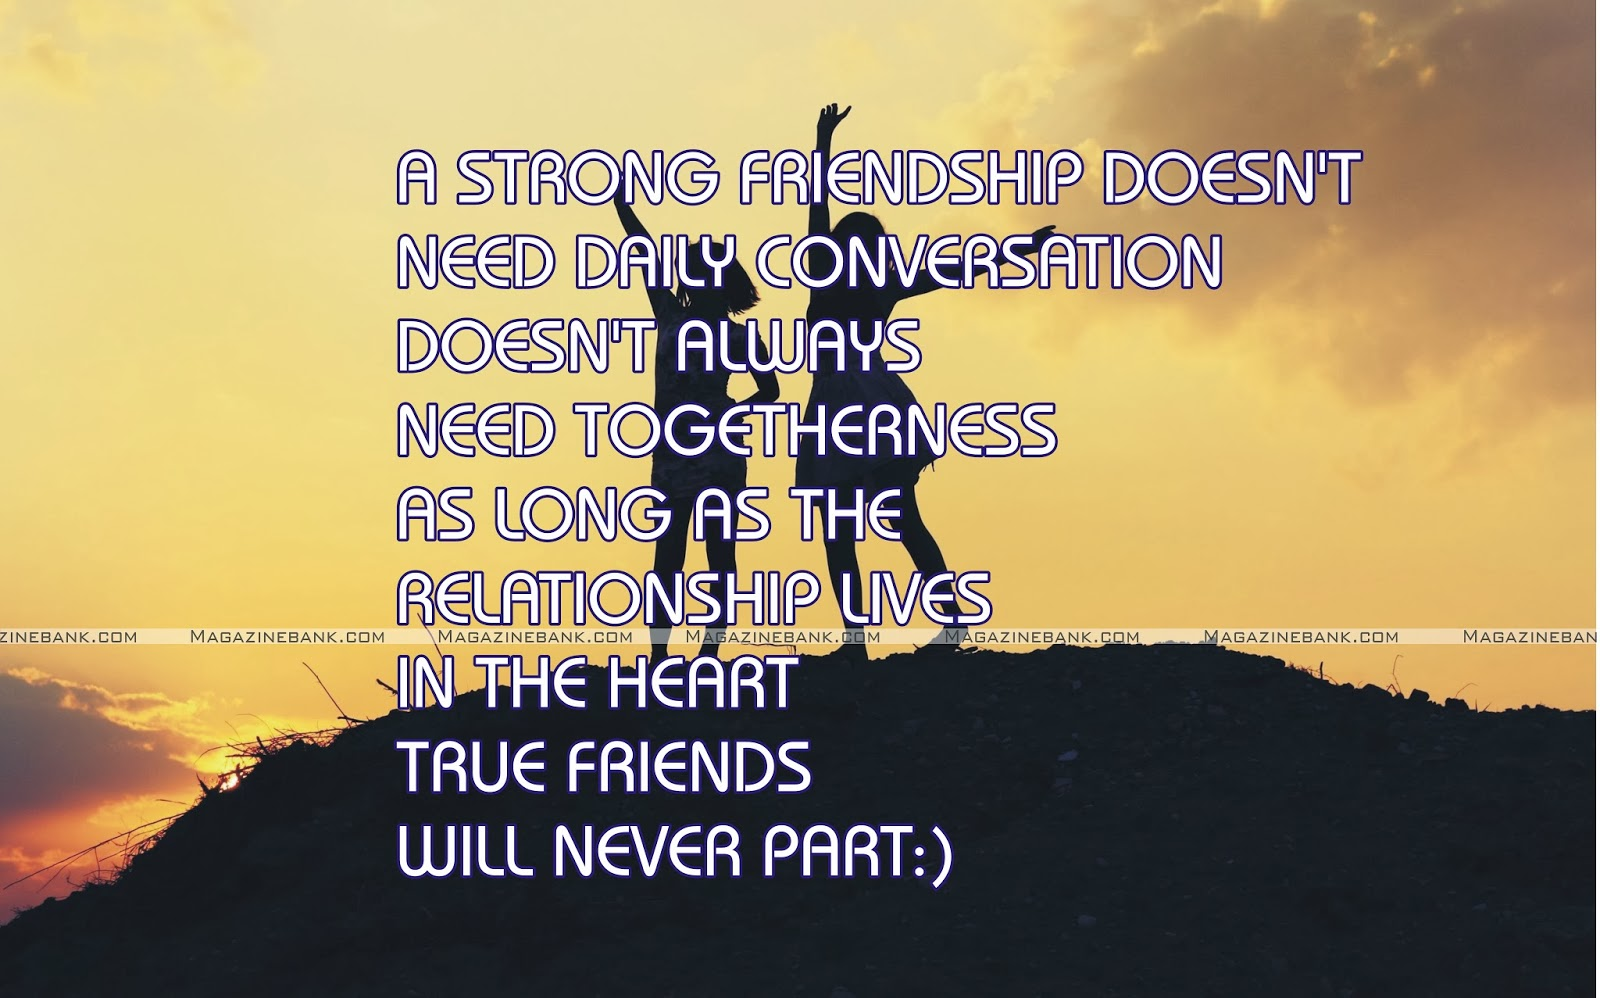 Quotes About Love And Friendship: New Found Friendship Quotes. QuotesGram